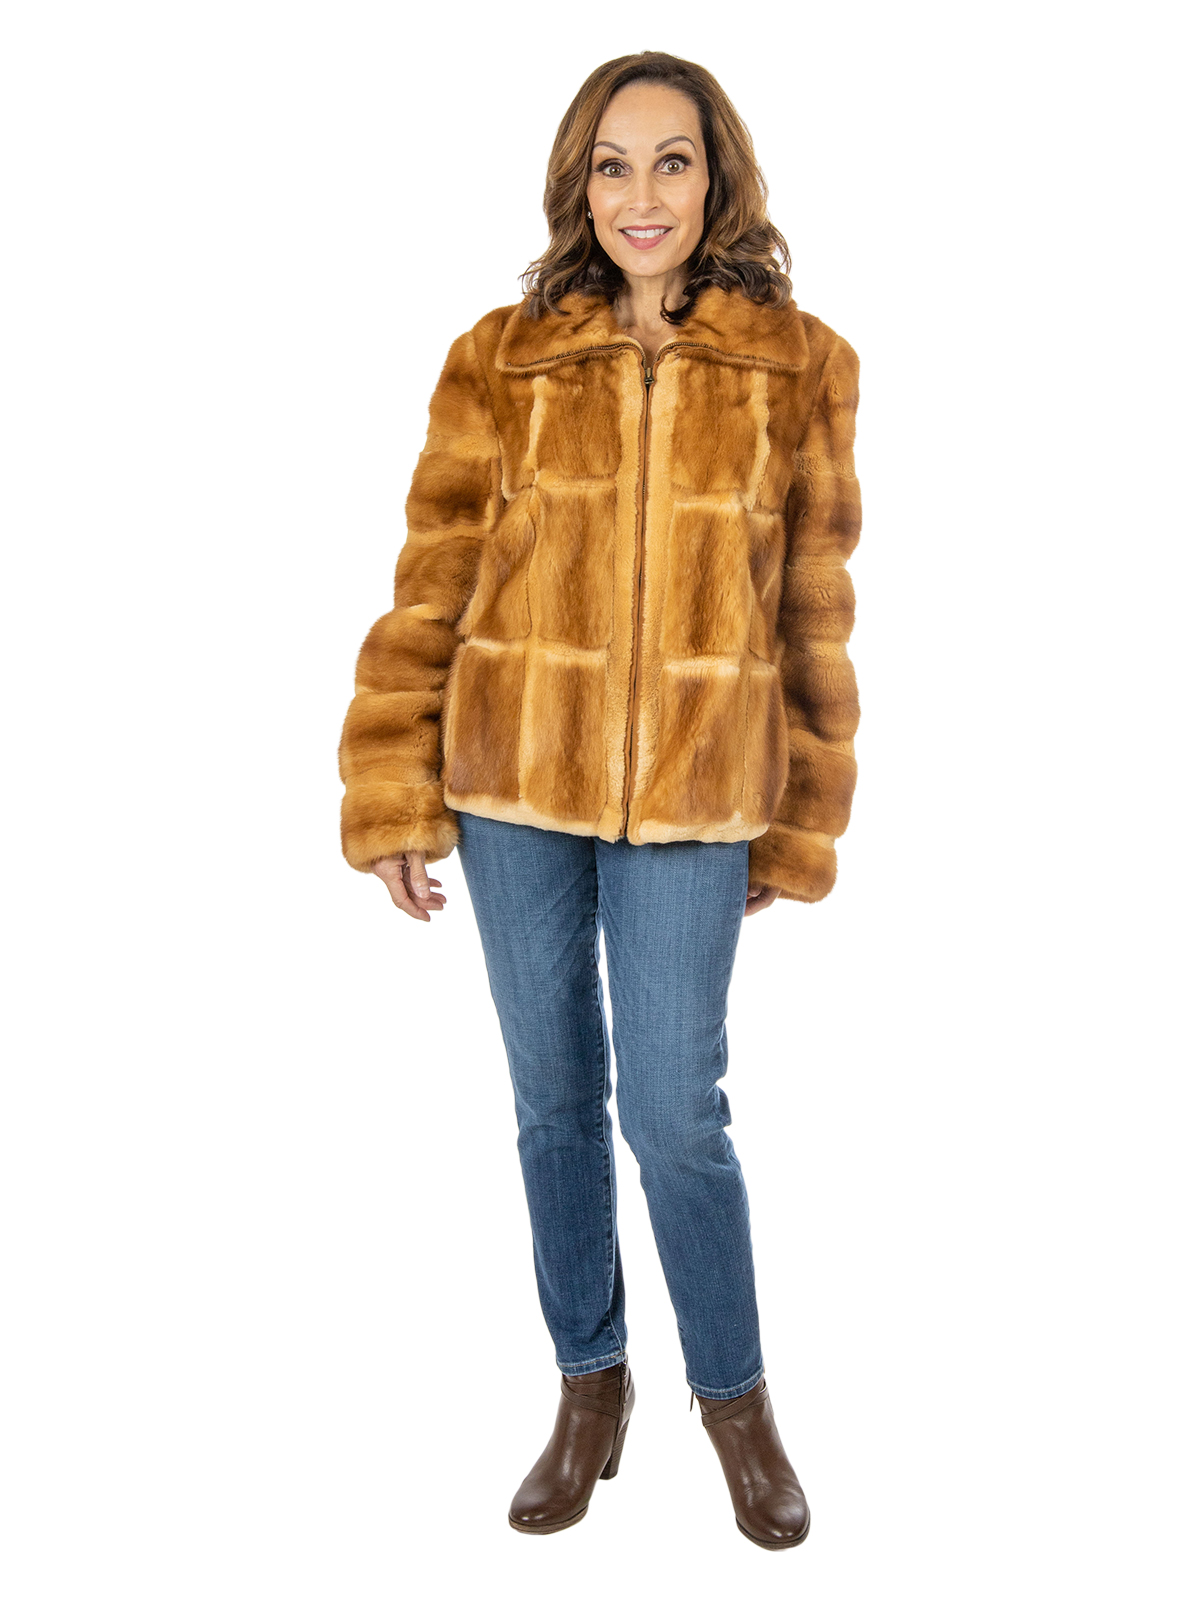 Woman's Whiskey Mink Fur Jacket with Sheared Mink Detail